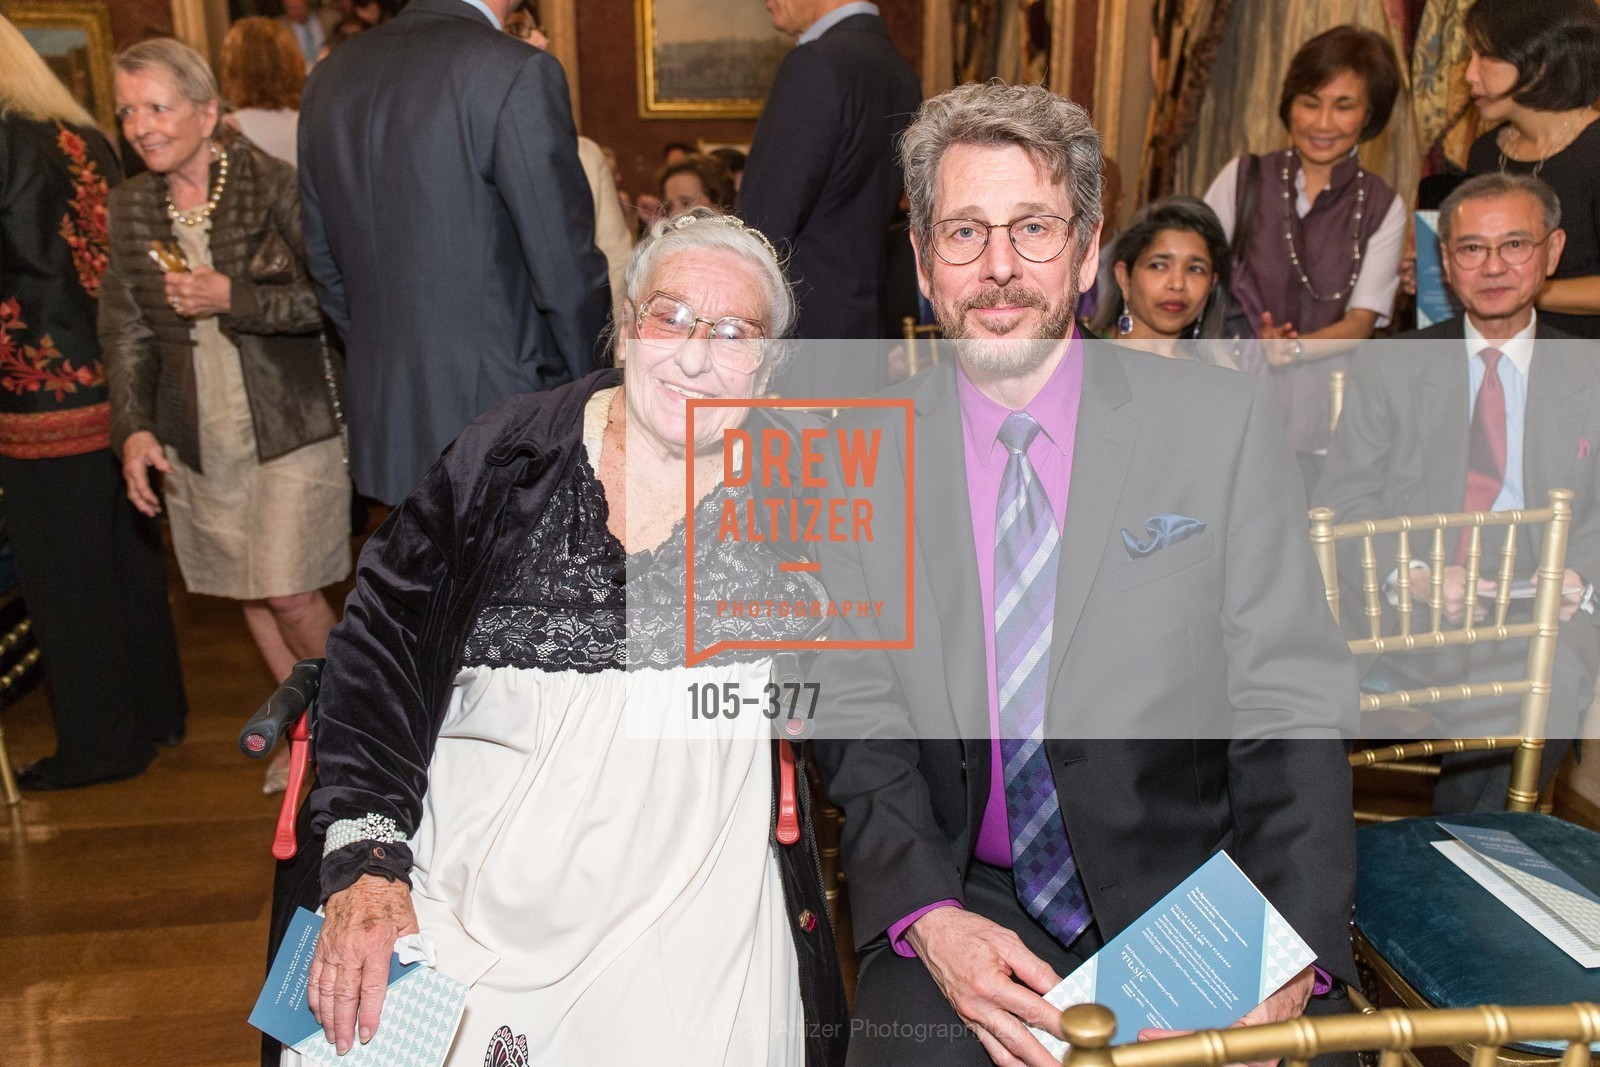 Eloise Bhullier, Larry Hancock, Ann and Gordon Getty Host SF Conservatory of Music with Marilyn Horne, Private Residence, October 15th, 2015,Drew Altizer, Drew Altizer Photography, full-service agency, private events, San Francisco photographer, photographer california